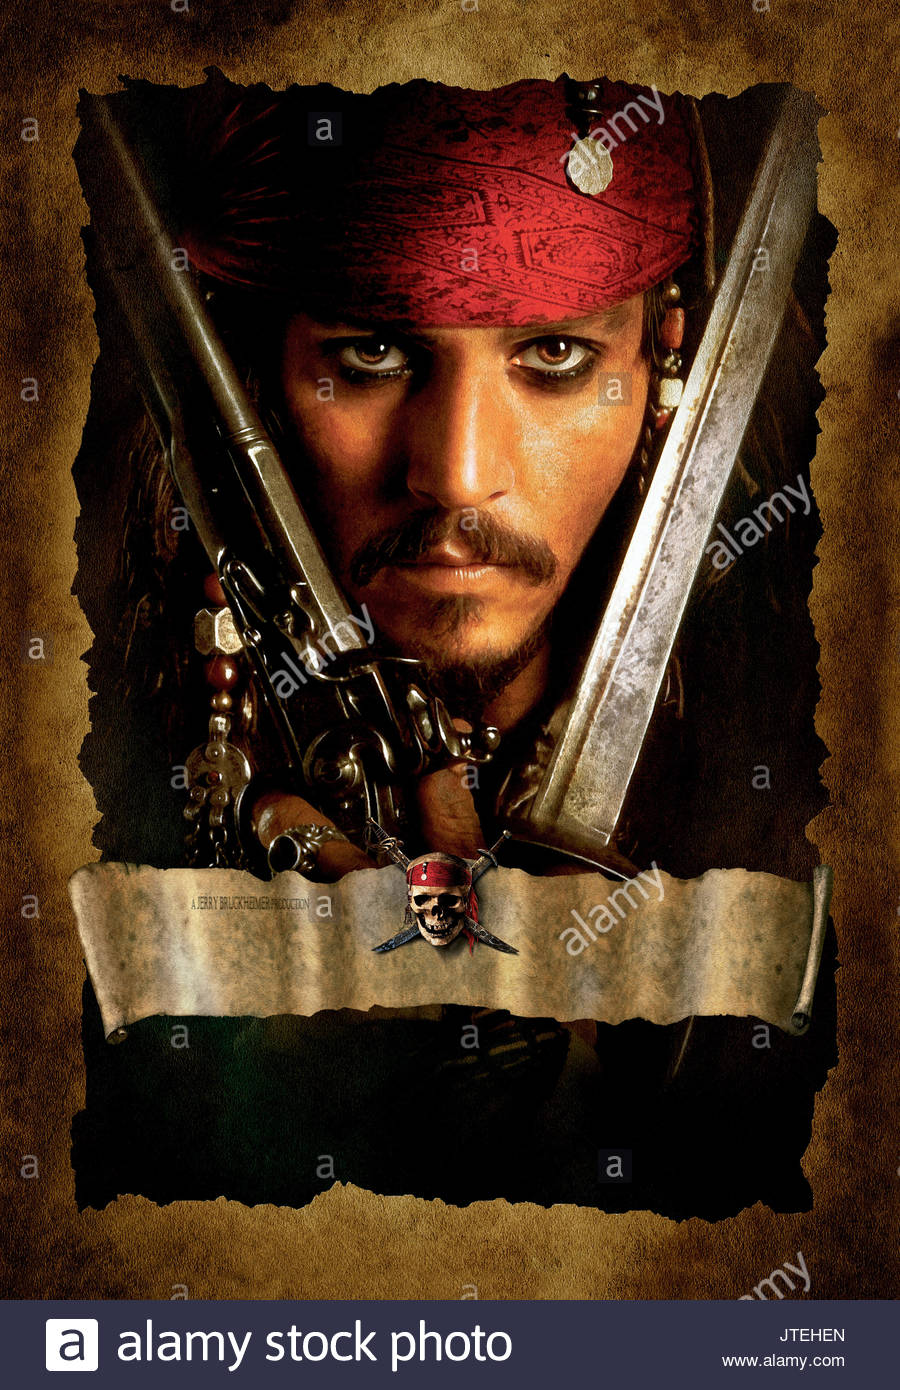 Johnny Depp Pirates Of The Caribbean The Curse Of The Black Pearl Stock Photo Alamy